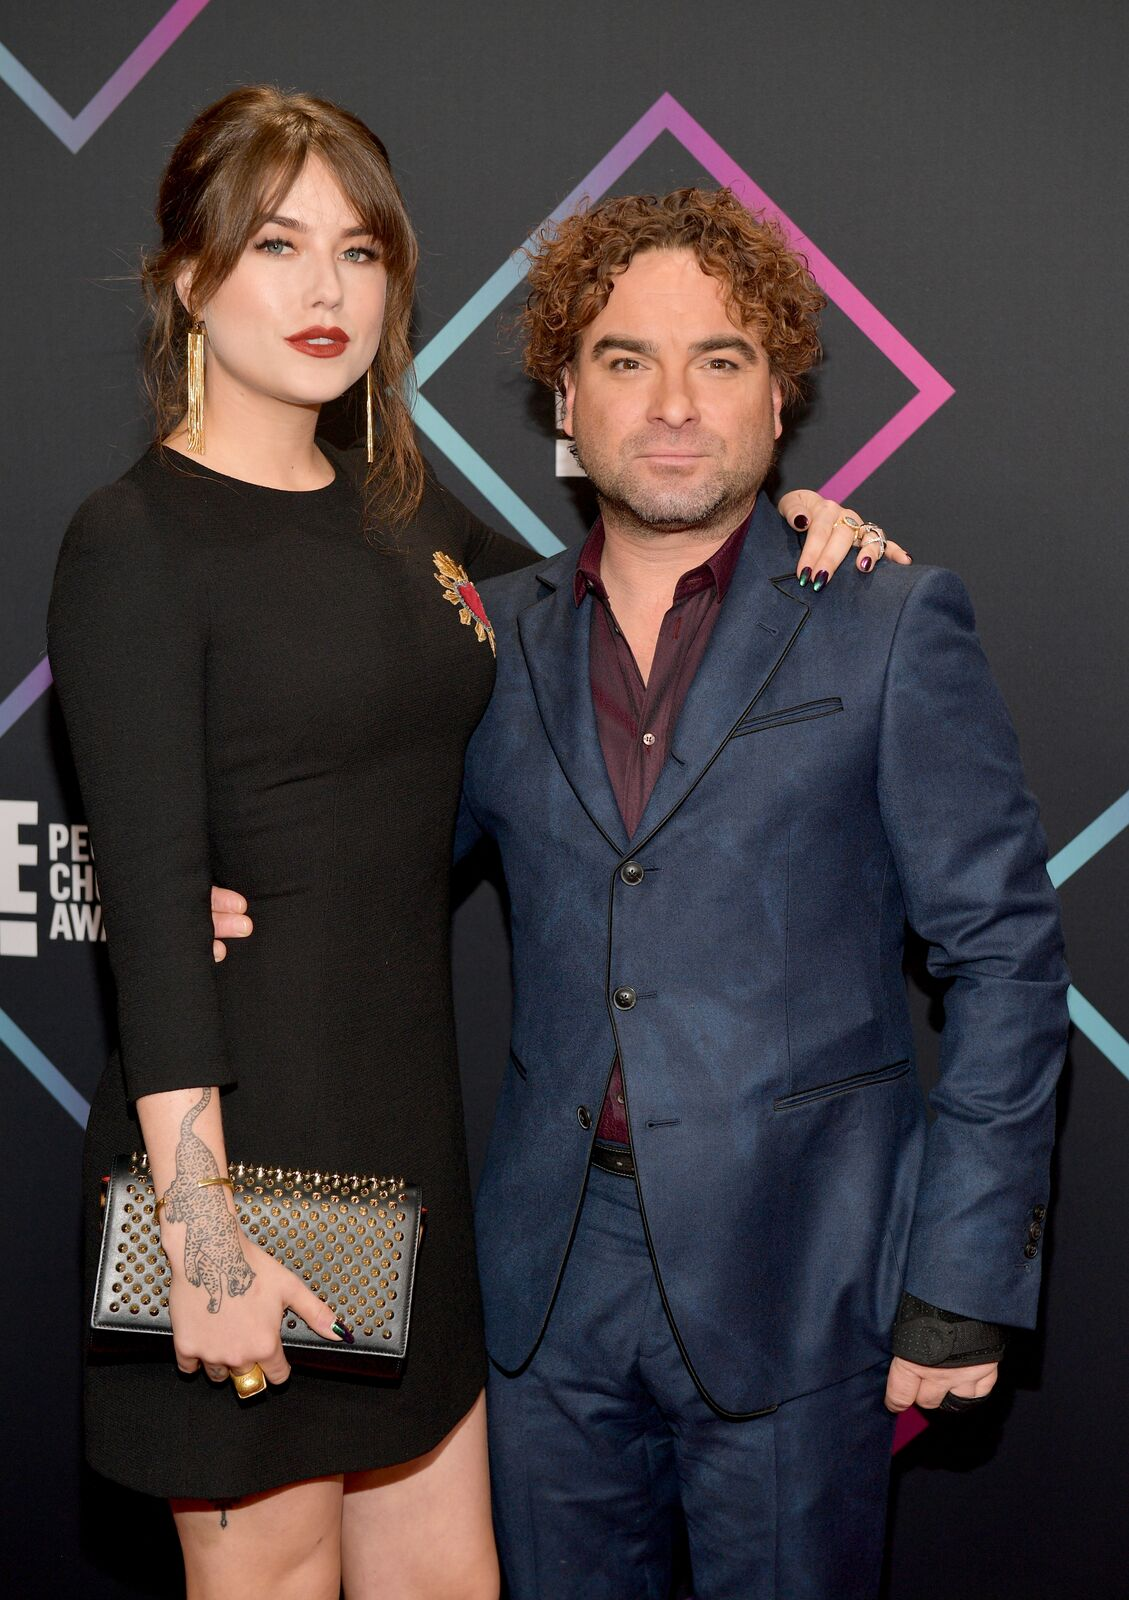 Johnny Galecki and Alaina Meyer attend the People's Choice Awards 2018 at Barker Hangar on November 11, 2018. | Photo: Getty Images